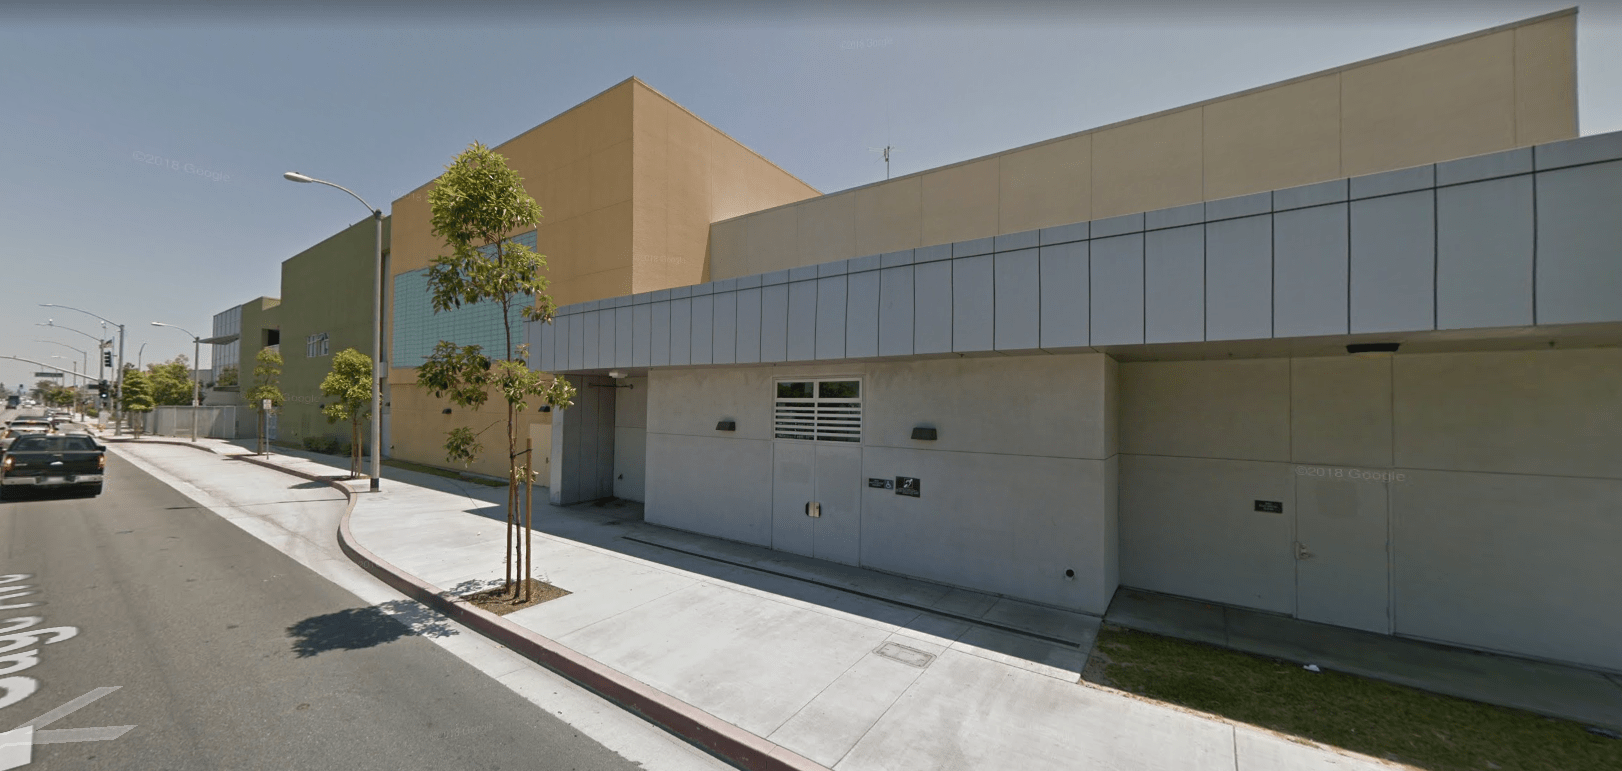 Orchard Academies in the city of Bell is seen in a Google Maps Street View image on May 29, 2019.